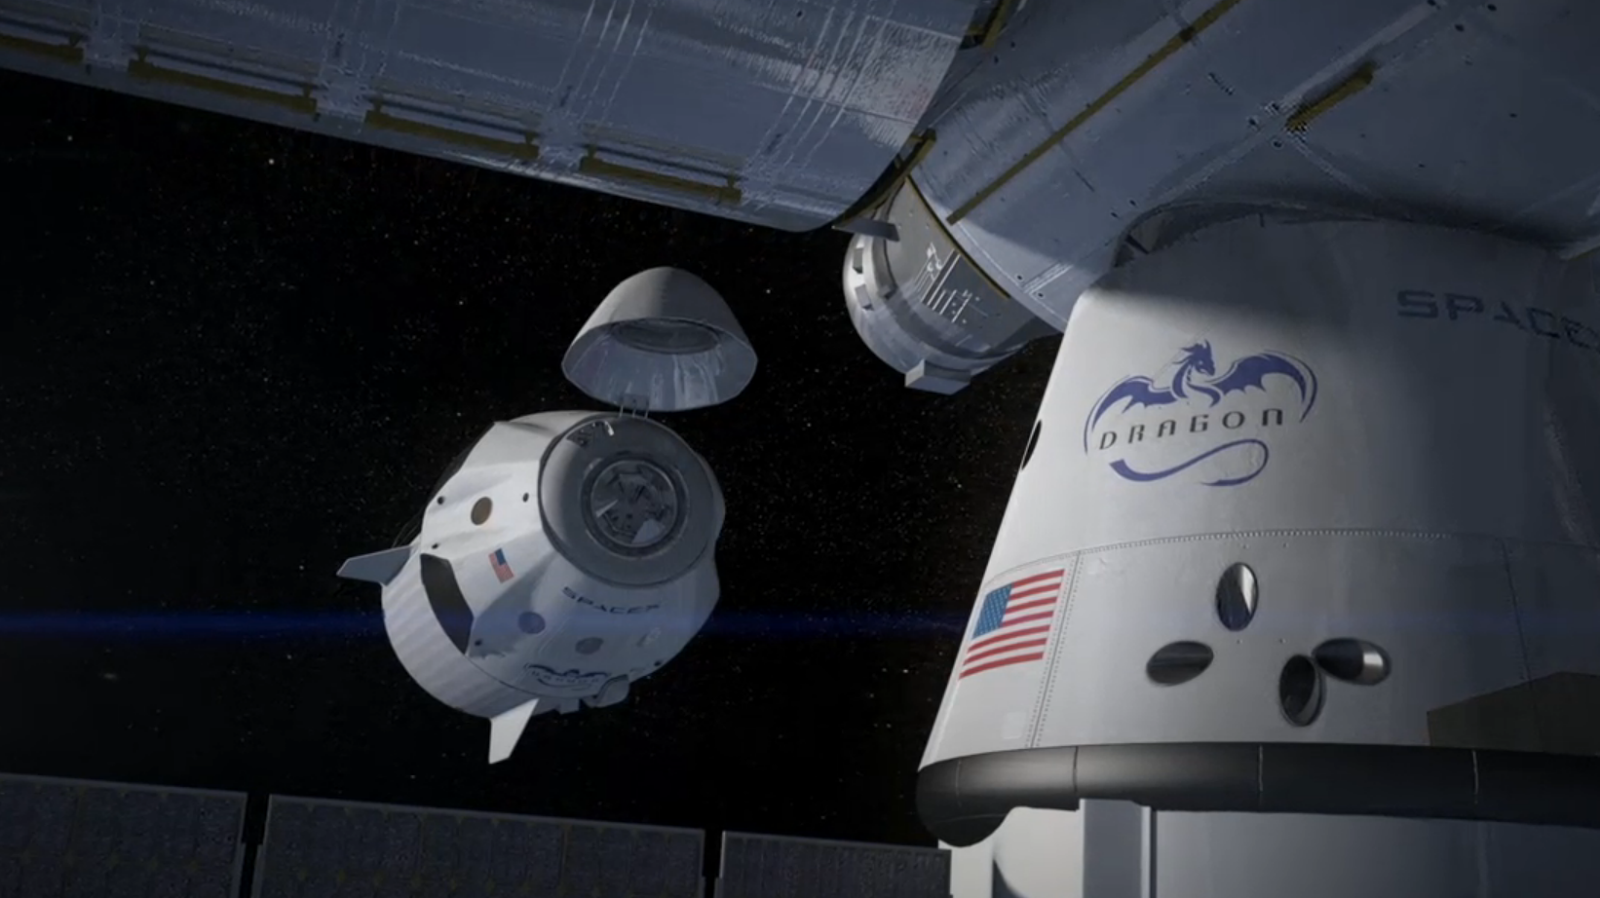 spacex dragon docking - photo #30